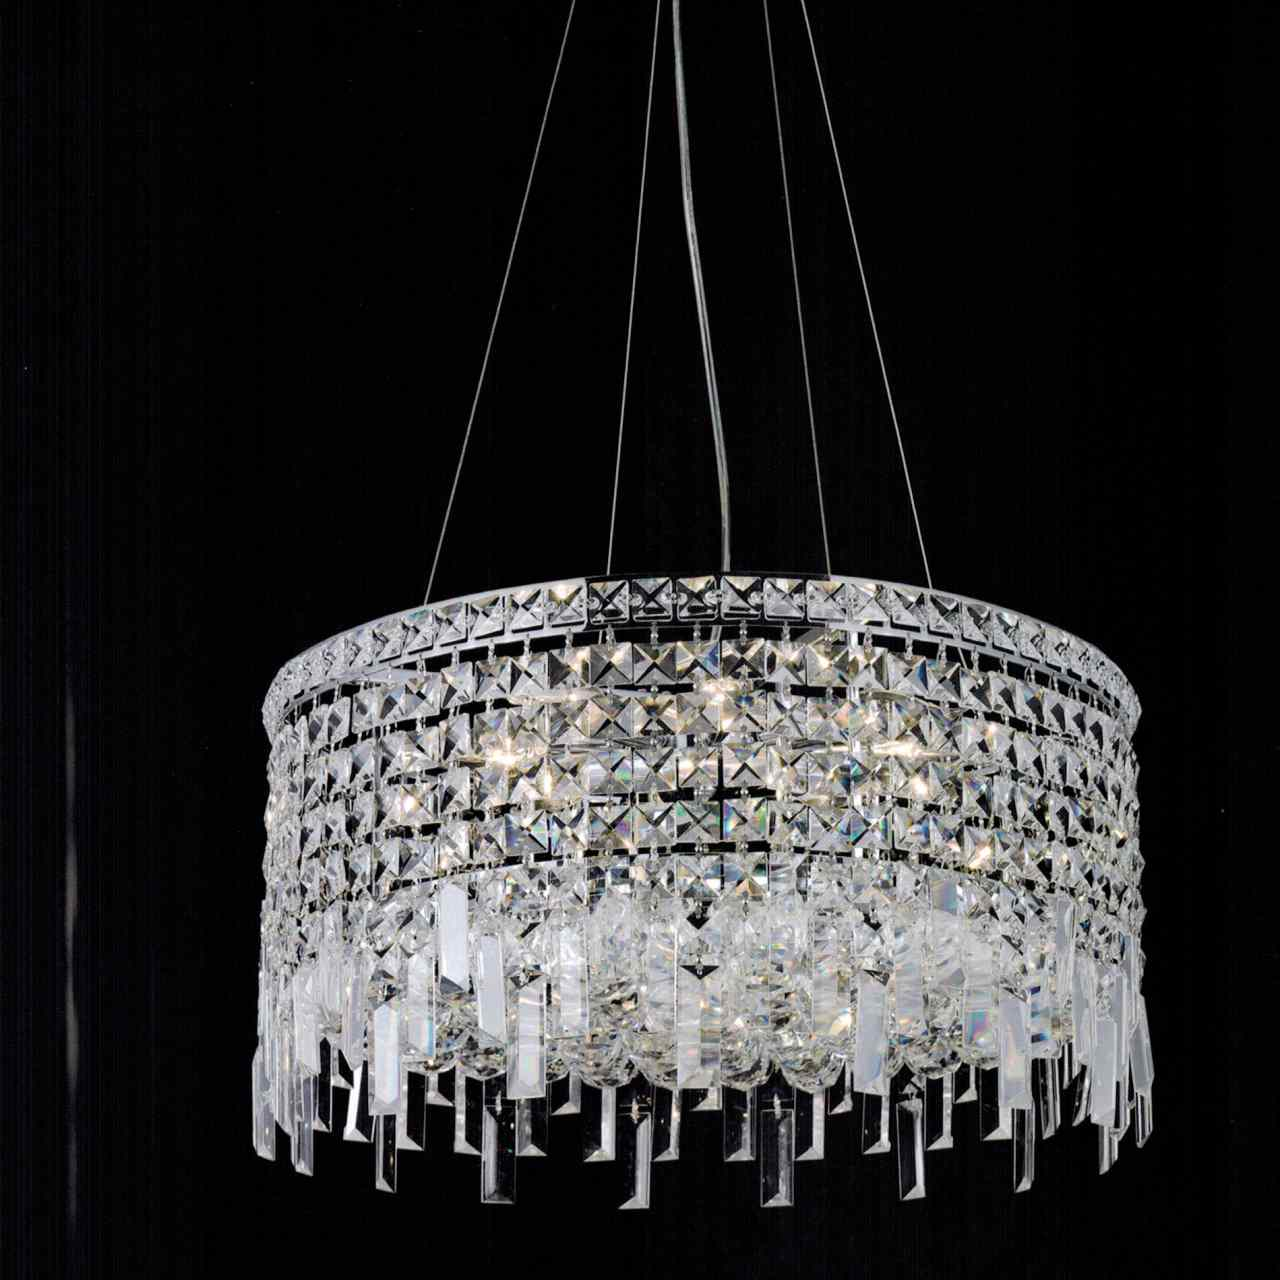 Brizzo lighting stores 16 bossolo transitional crystal round picture of 16 bossolo transitional crystal round pendant chandelier polished chrome 5 lights arubaitofo Gallery